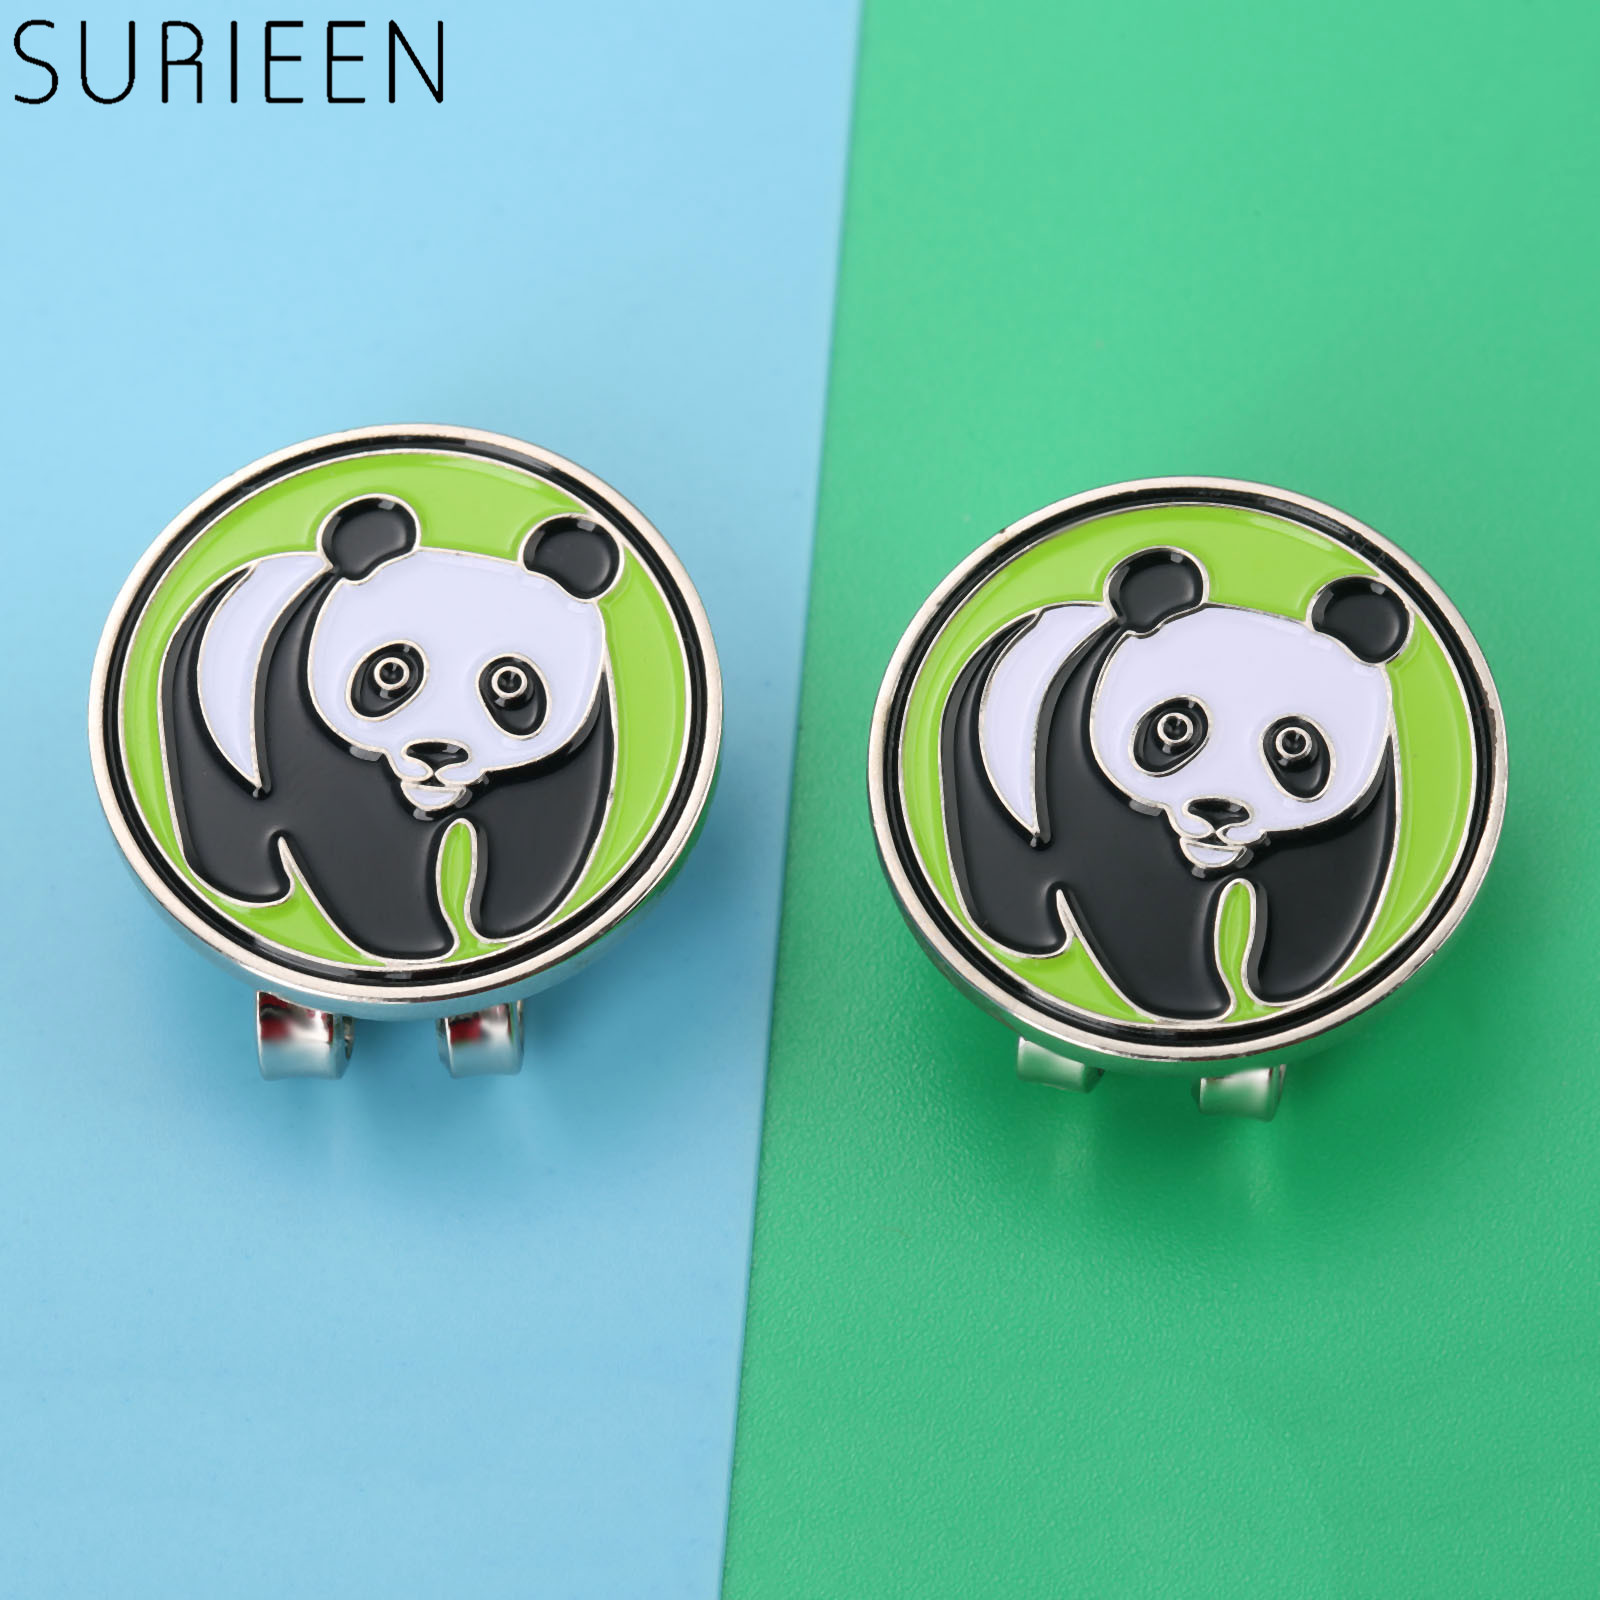 SURIEEN NEW Funny Cap Visors Decoration For Golfers Panda Design Metal Golf Ball Mark With Magnetic Hat Clips Golf Accessories